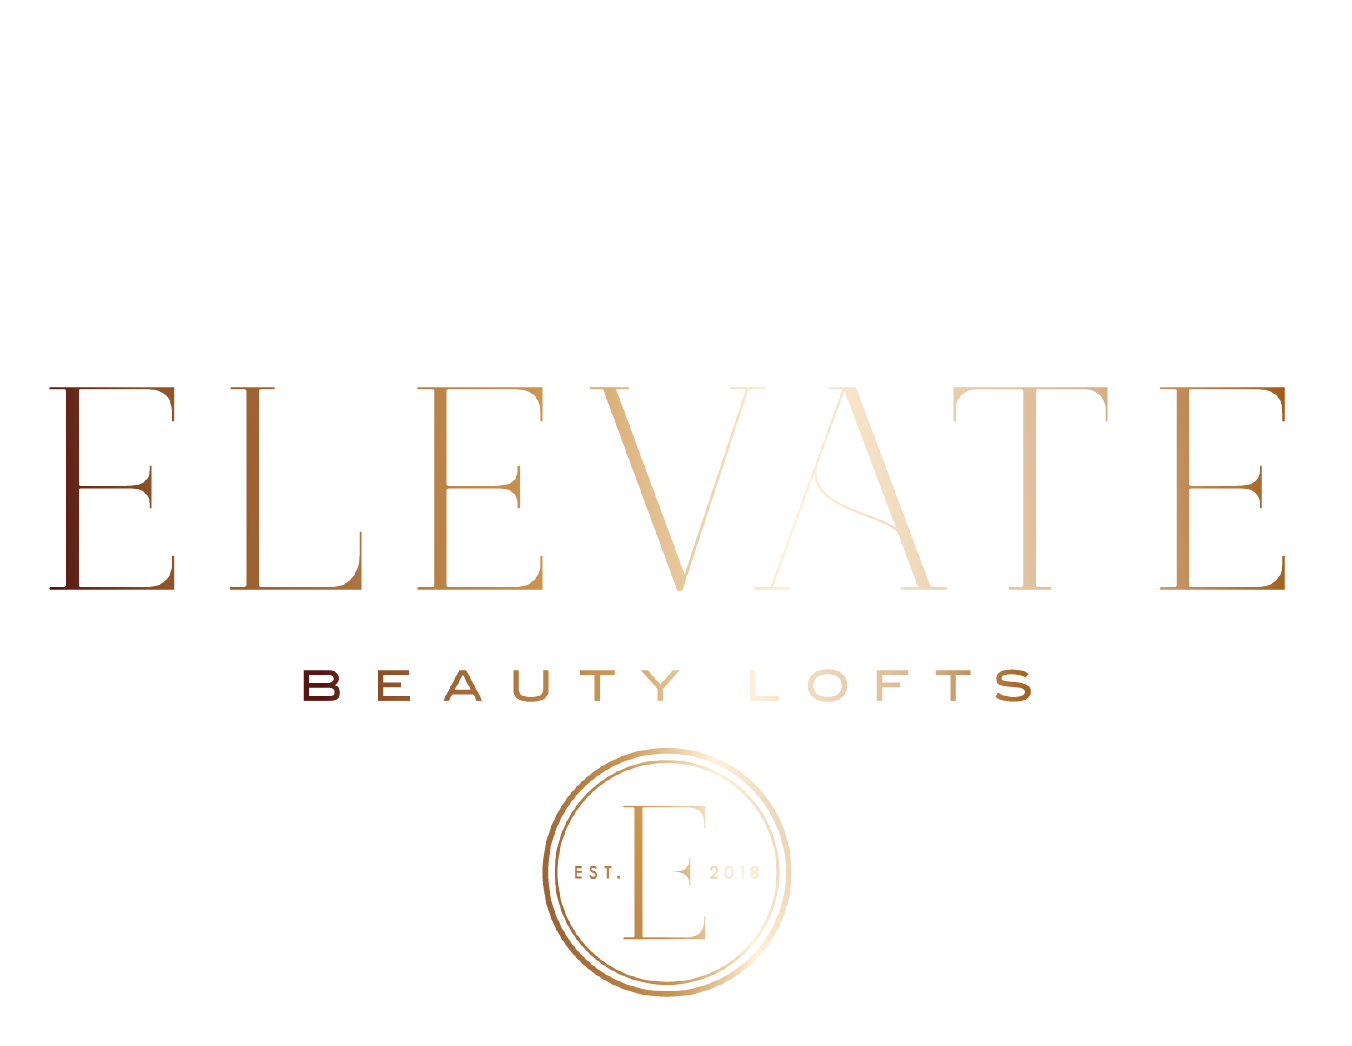 Elevate Beauty Lofts